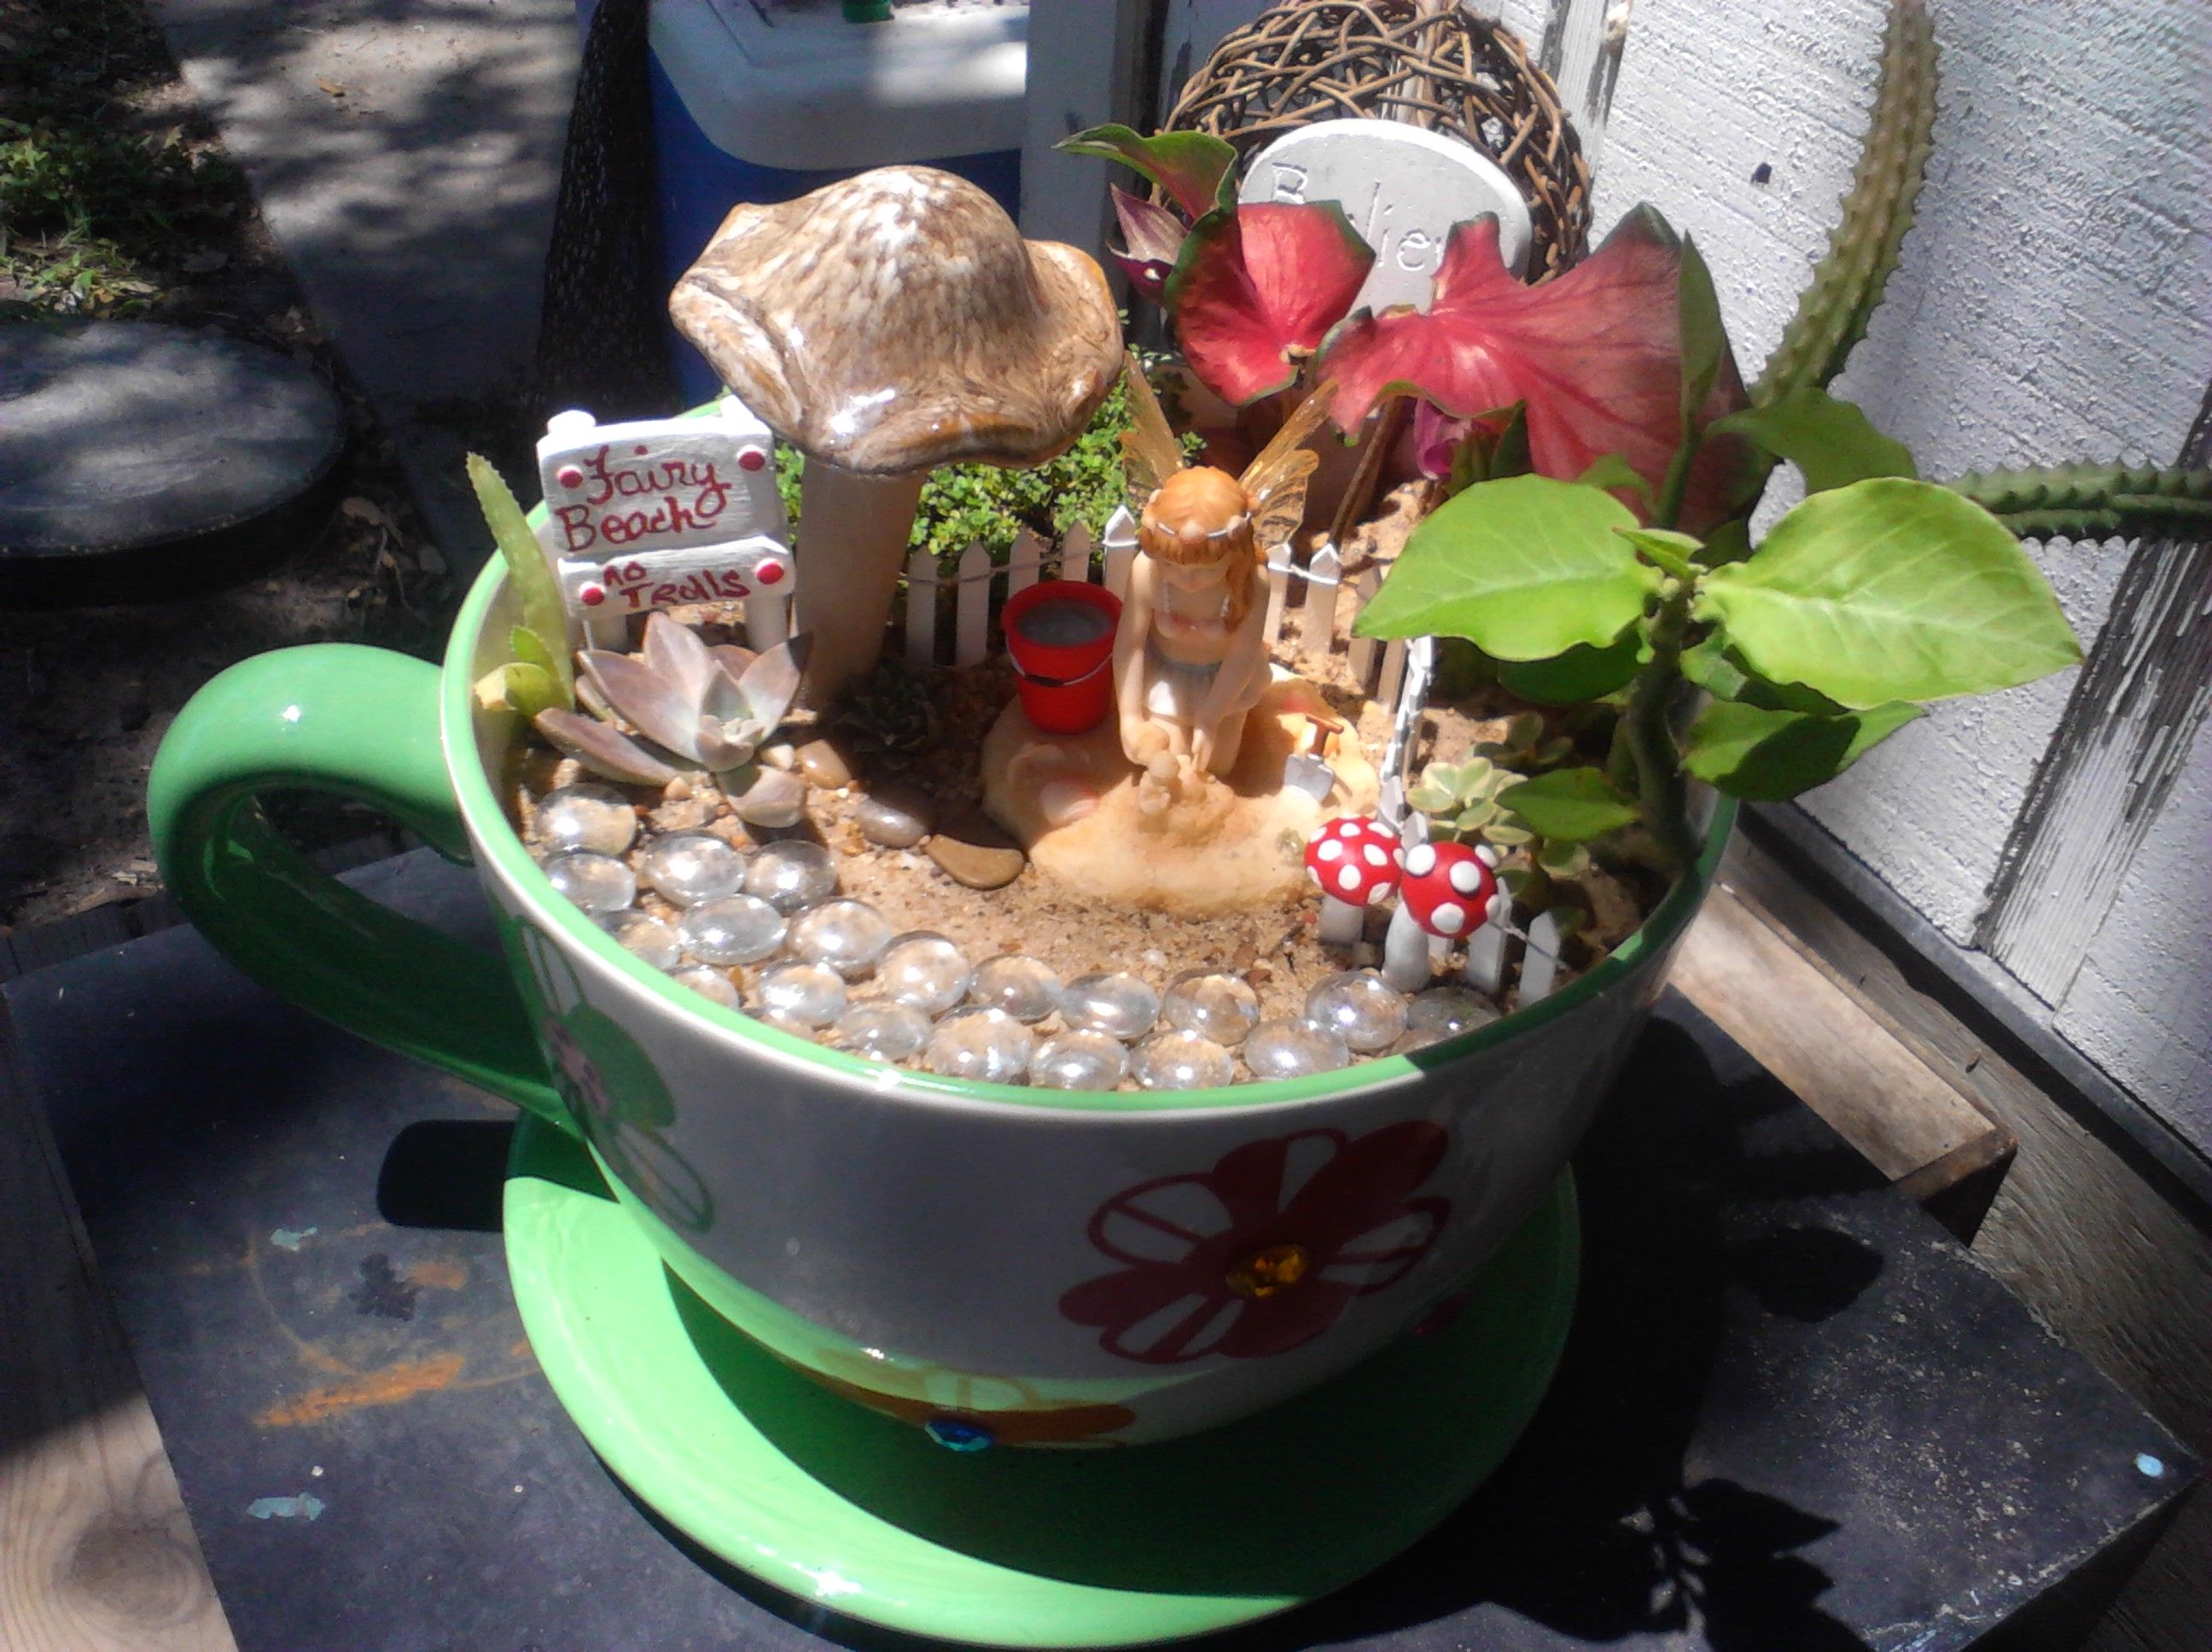 New Now For Sale Beach Fairy Garden In Xl Teacup Pot Comes With Beach Fairy White Picket Fenc Beach Fairy Garden Miniature Fairy Gardens Backyard Crafts